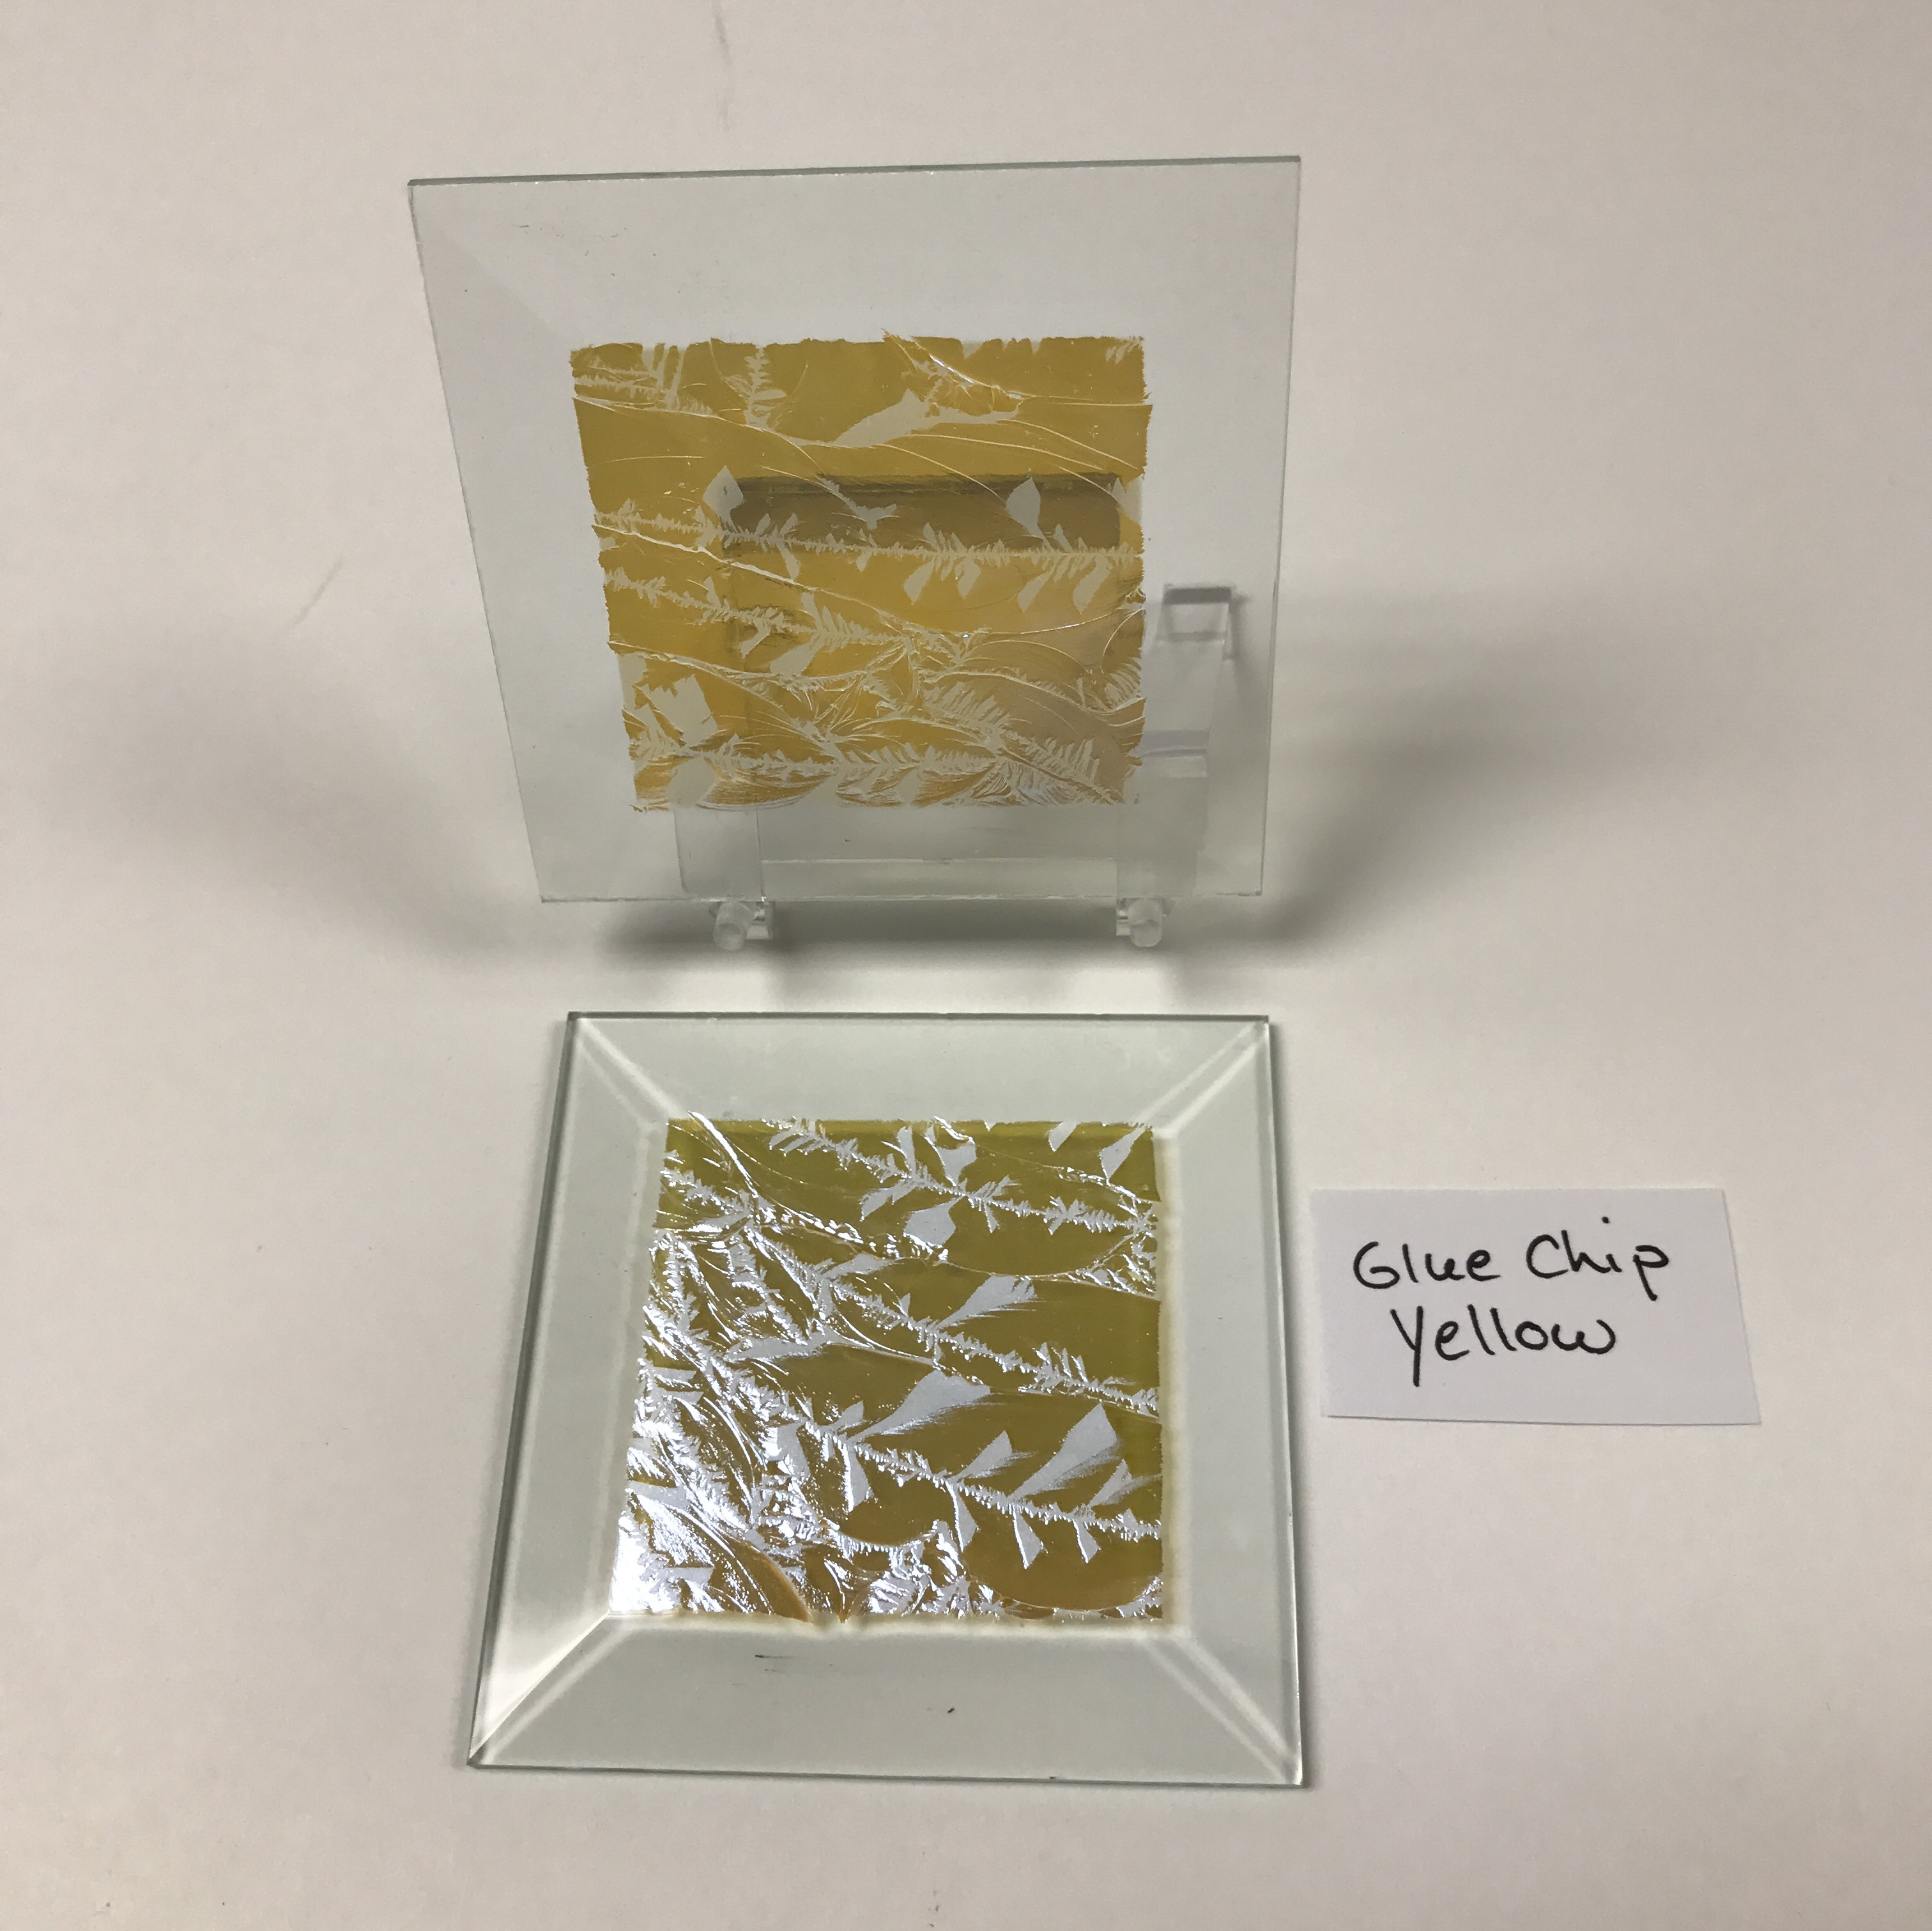 "Yellow dichroic glue chip 3"" x 3"" square glass stock bevel"